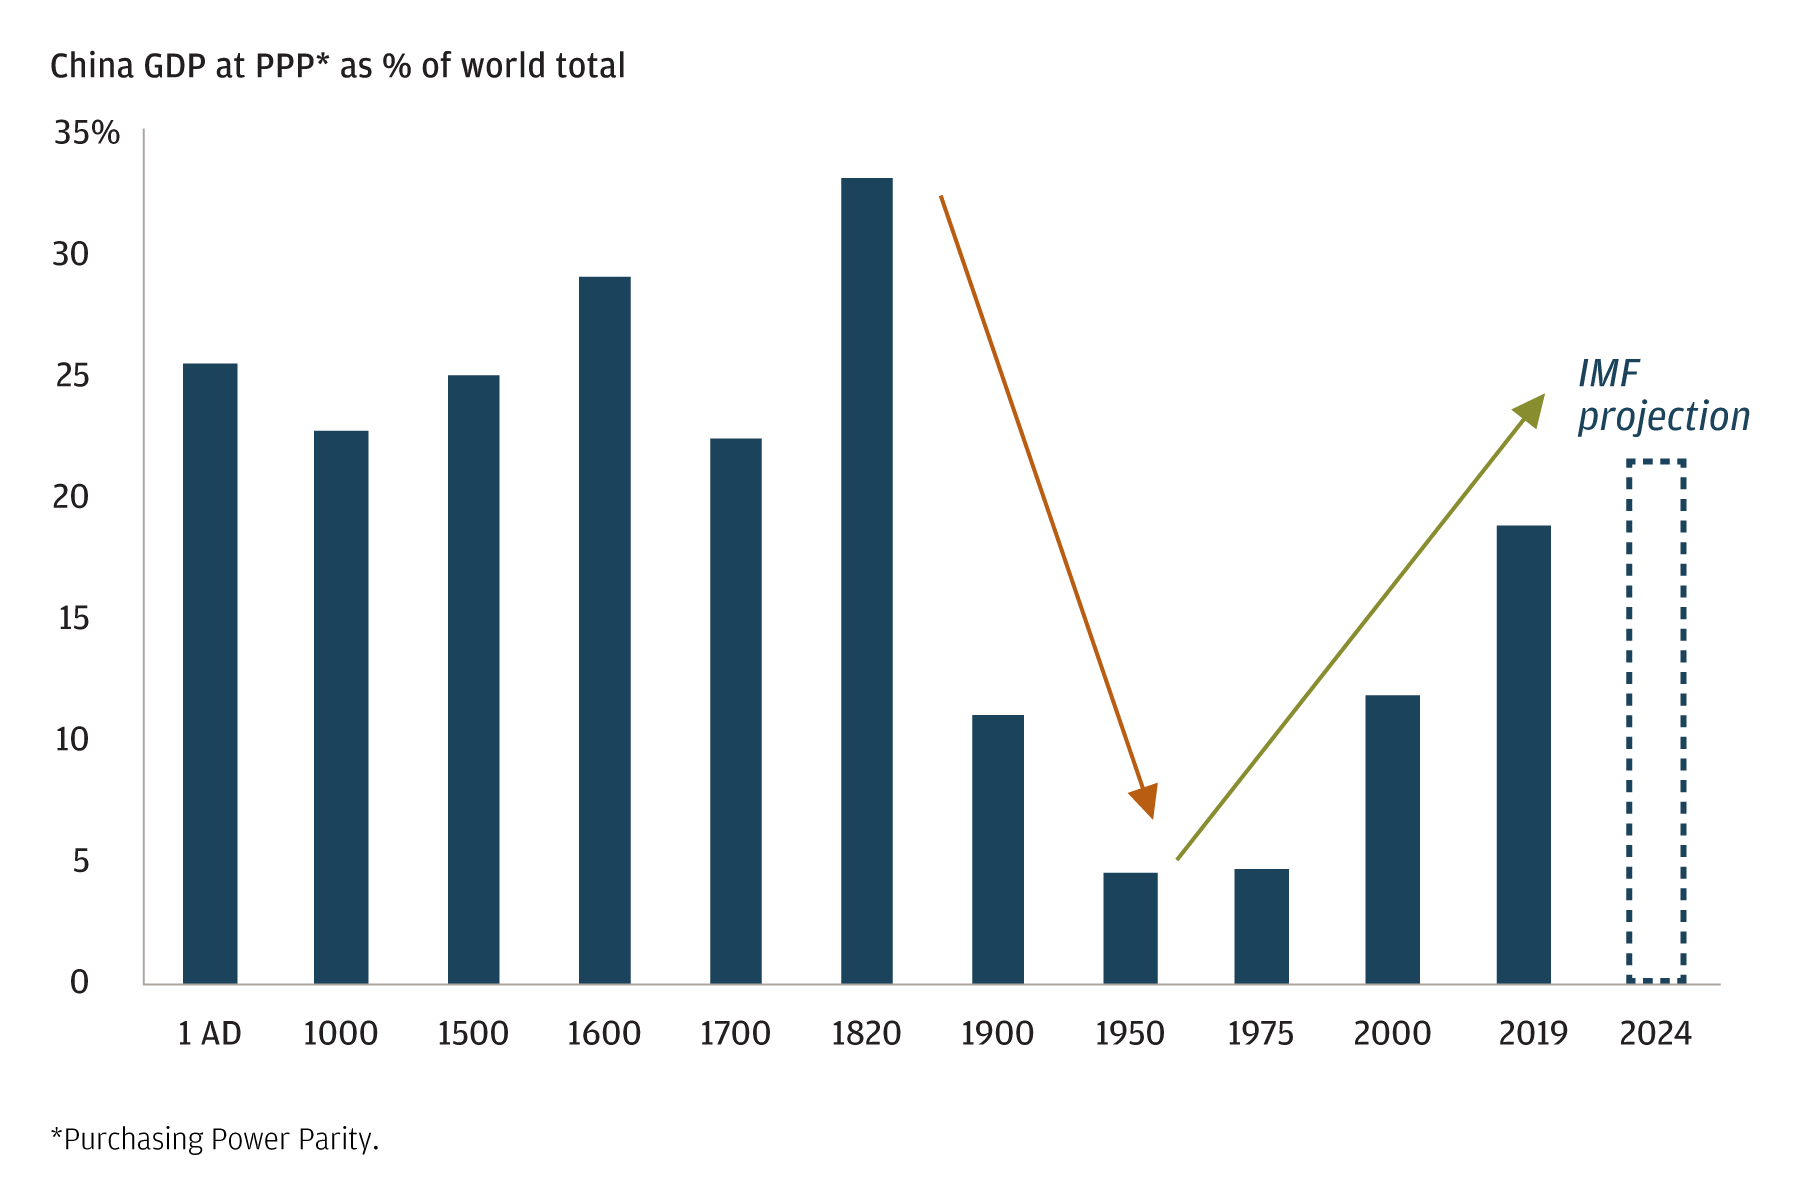 Bar chart showing China GDP at purchasing power parity as a percentage of world total from 1AD through 2019, and the IMF projection for 2024. The chart highlights that it reached its lowest in 1950 and has since been increasing.